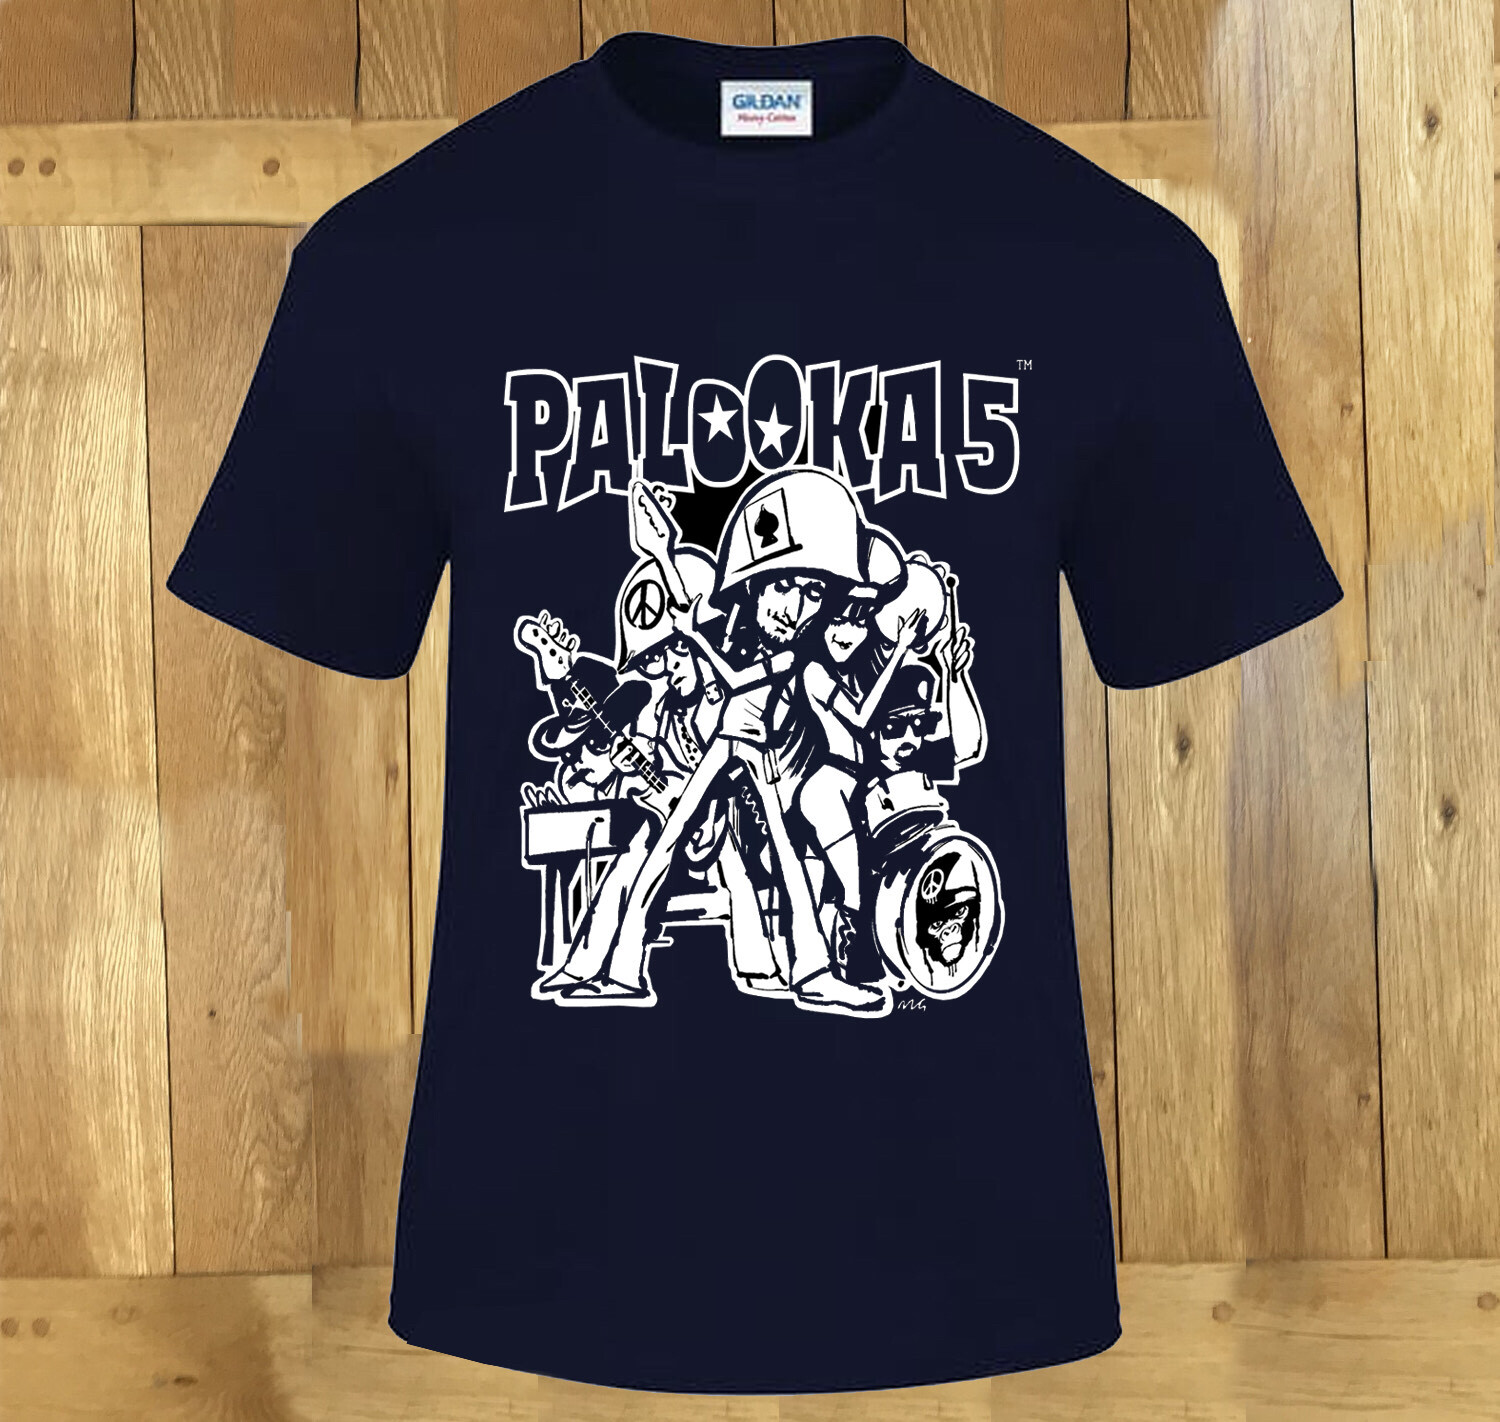 NEW PALOOKA LIMITED EDITION TS MEDIUM